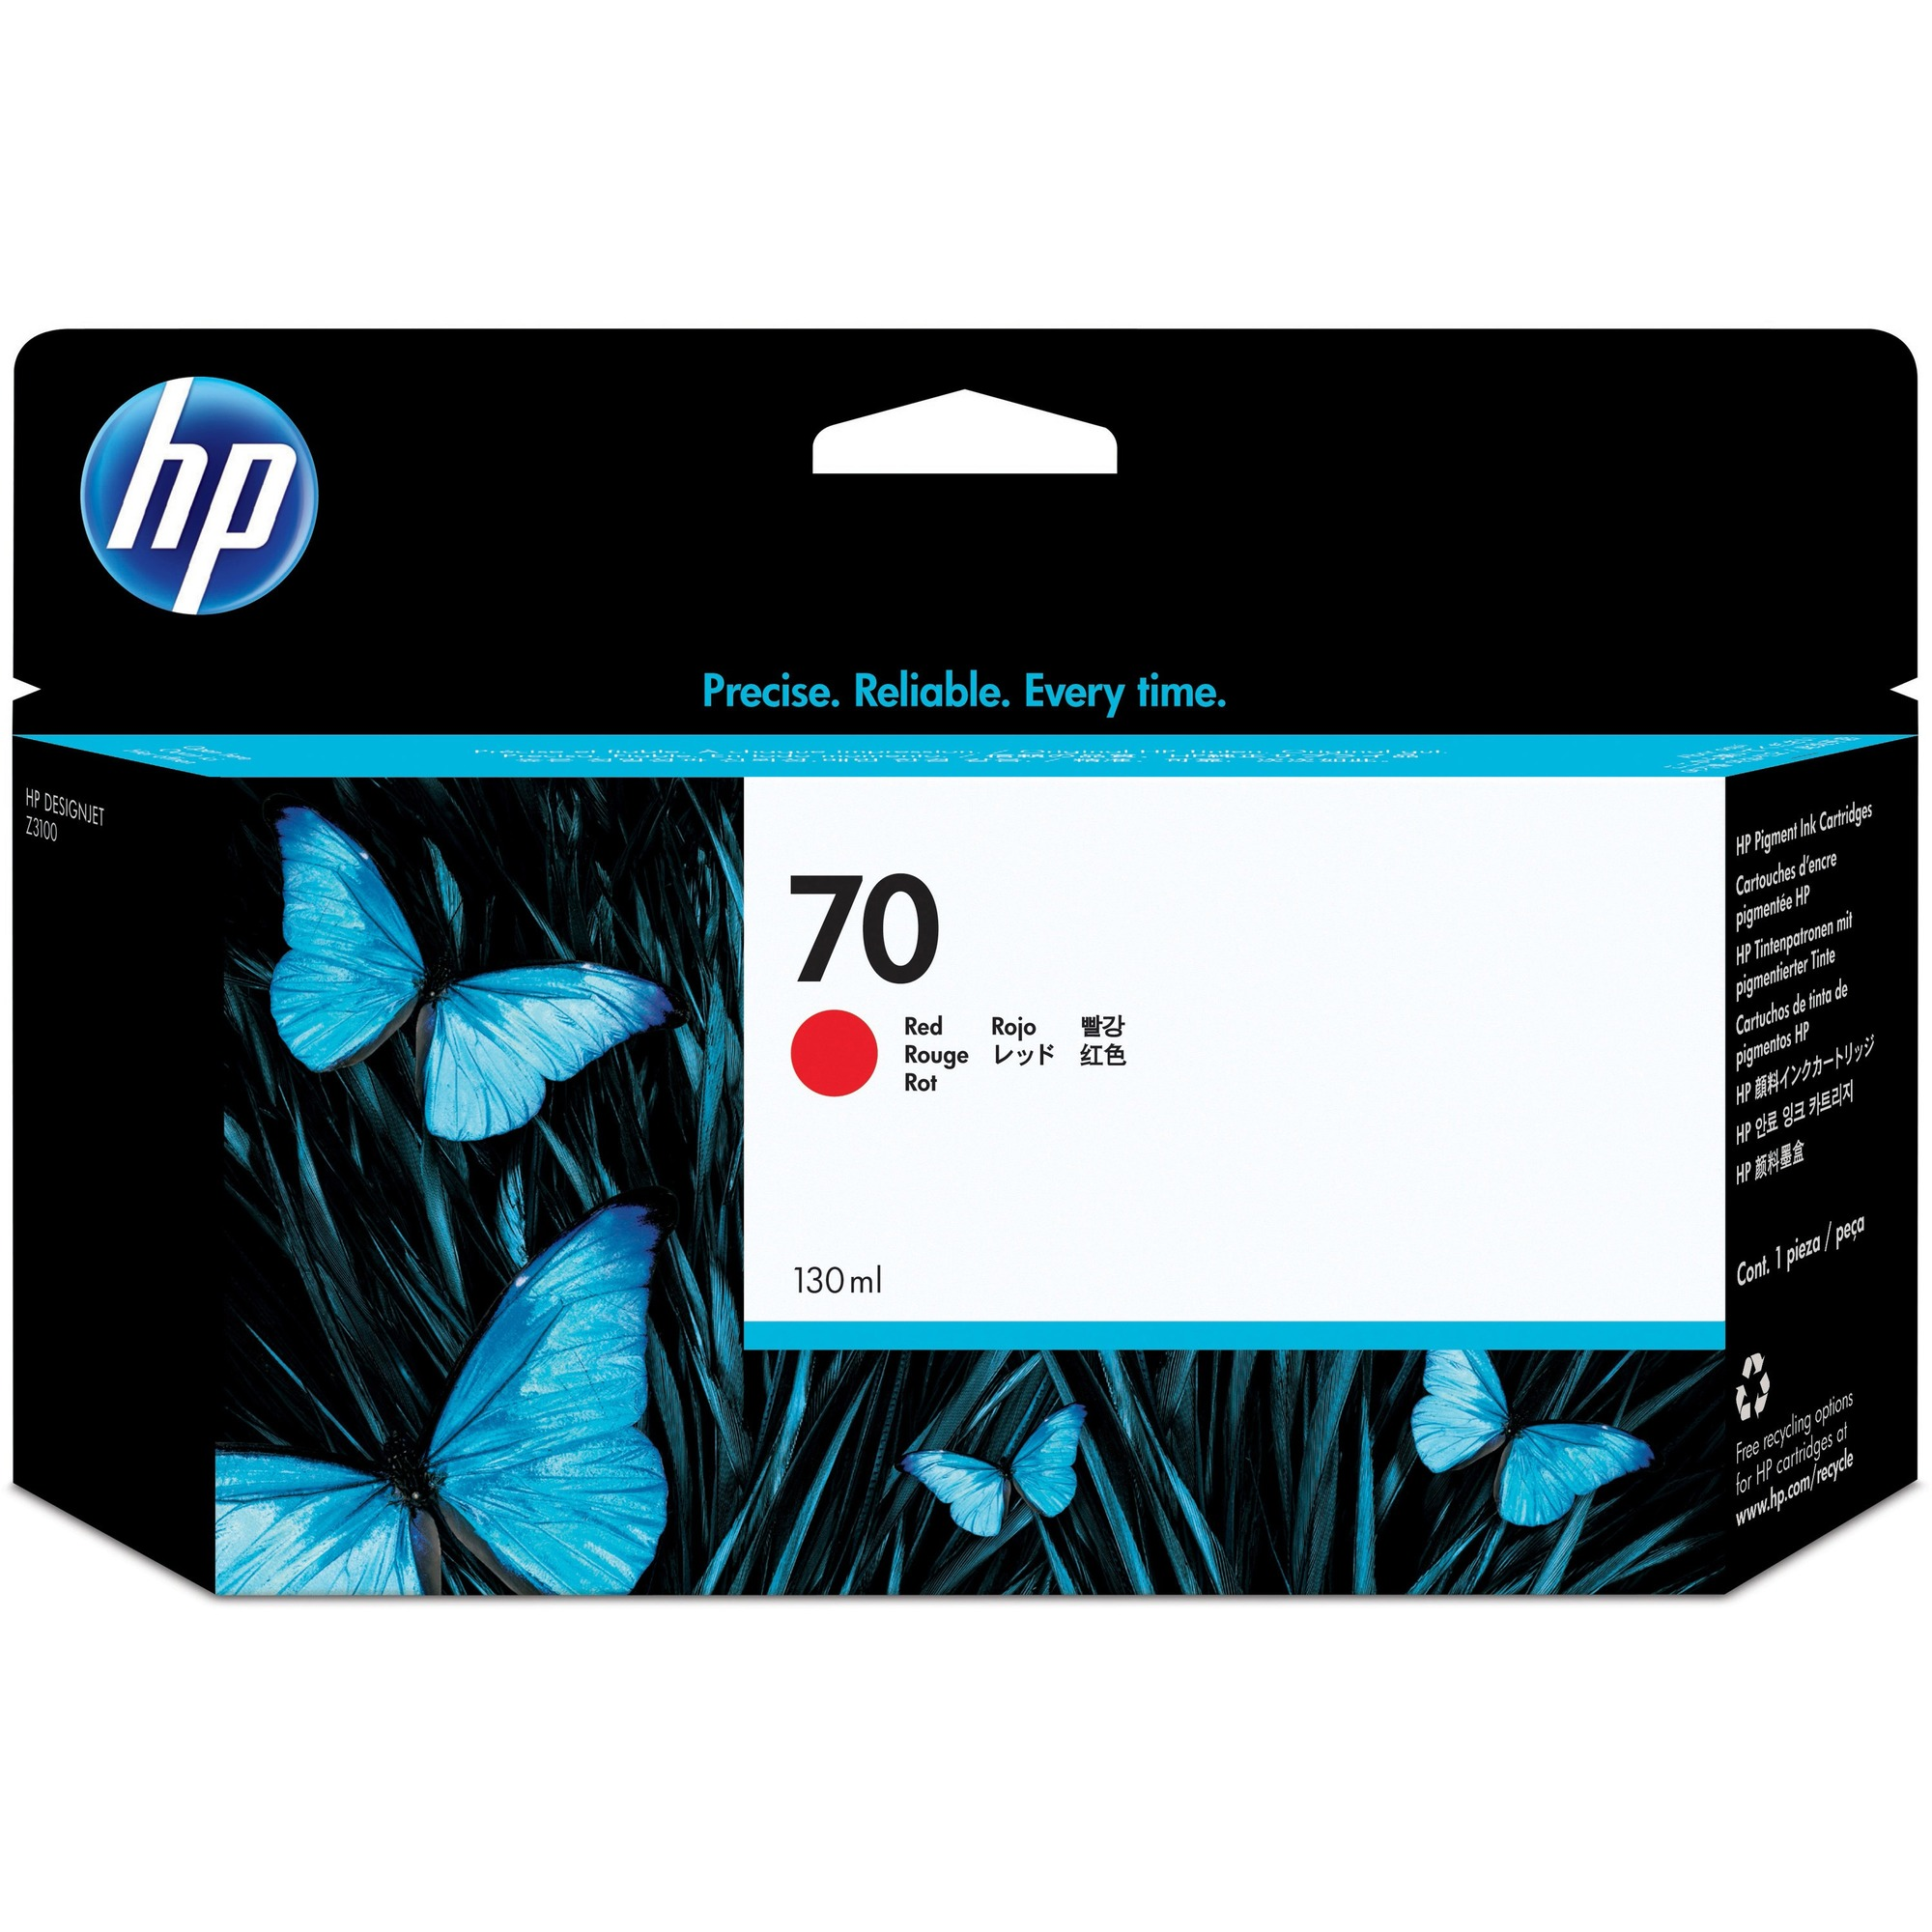 HP No. 70 Ink Cartridge - Red